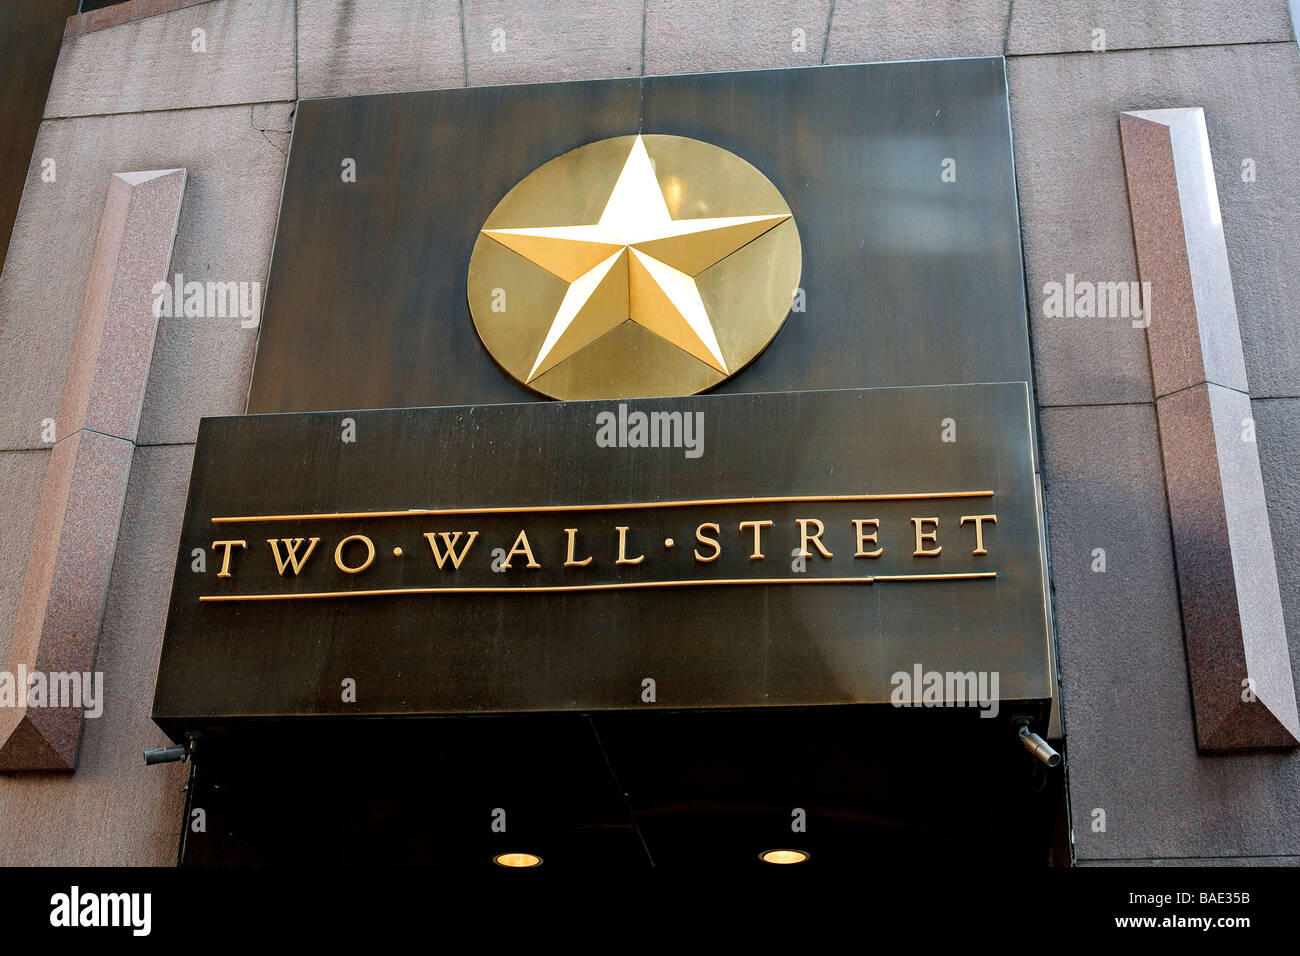 United States, New York, Wall Street, inscription and Golden Star on NYSE (New York Stock Exchange) Building Facade - Stock Image